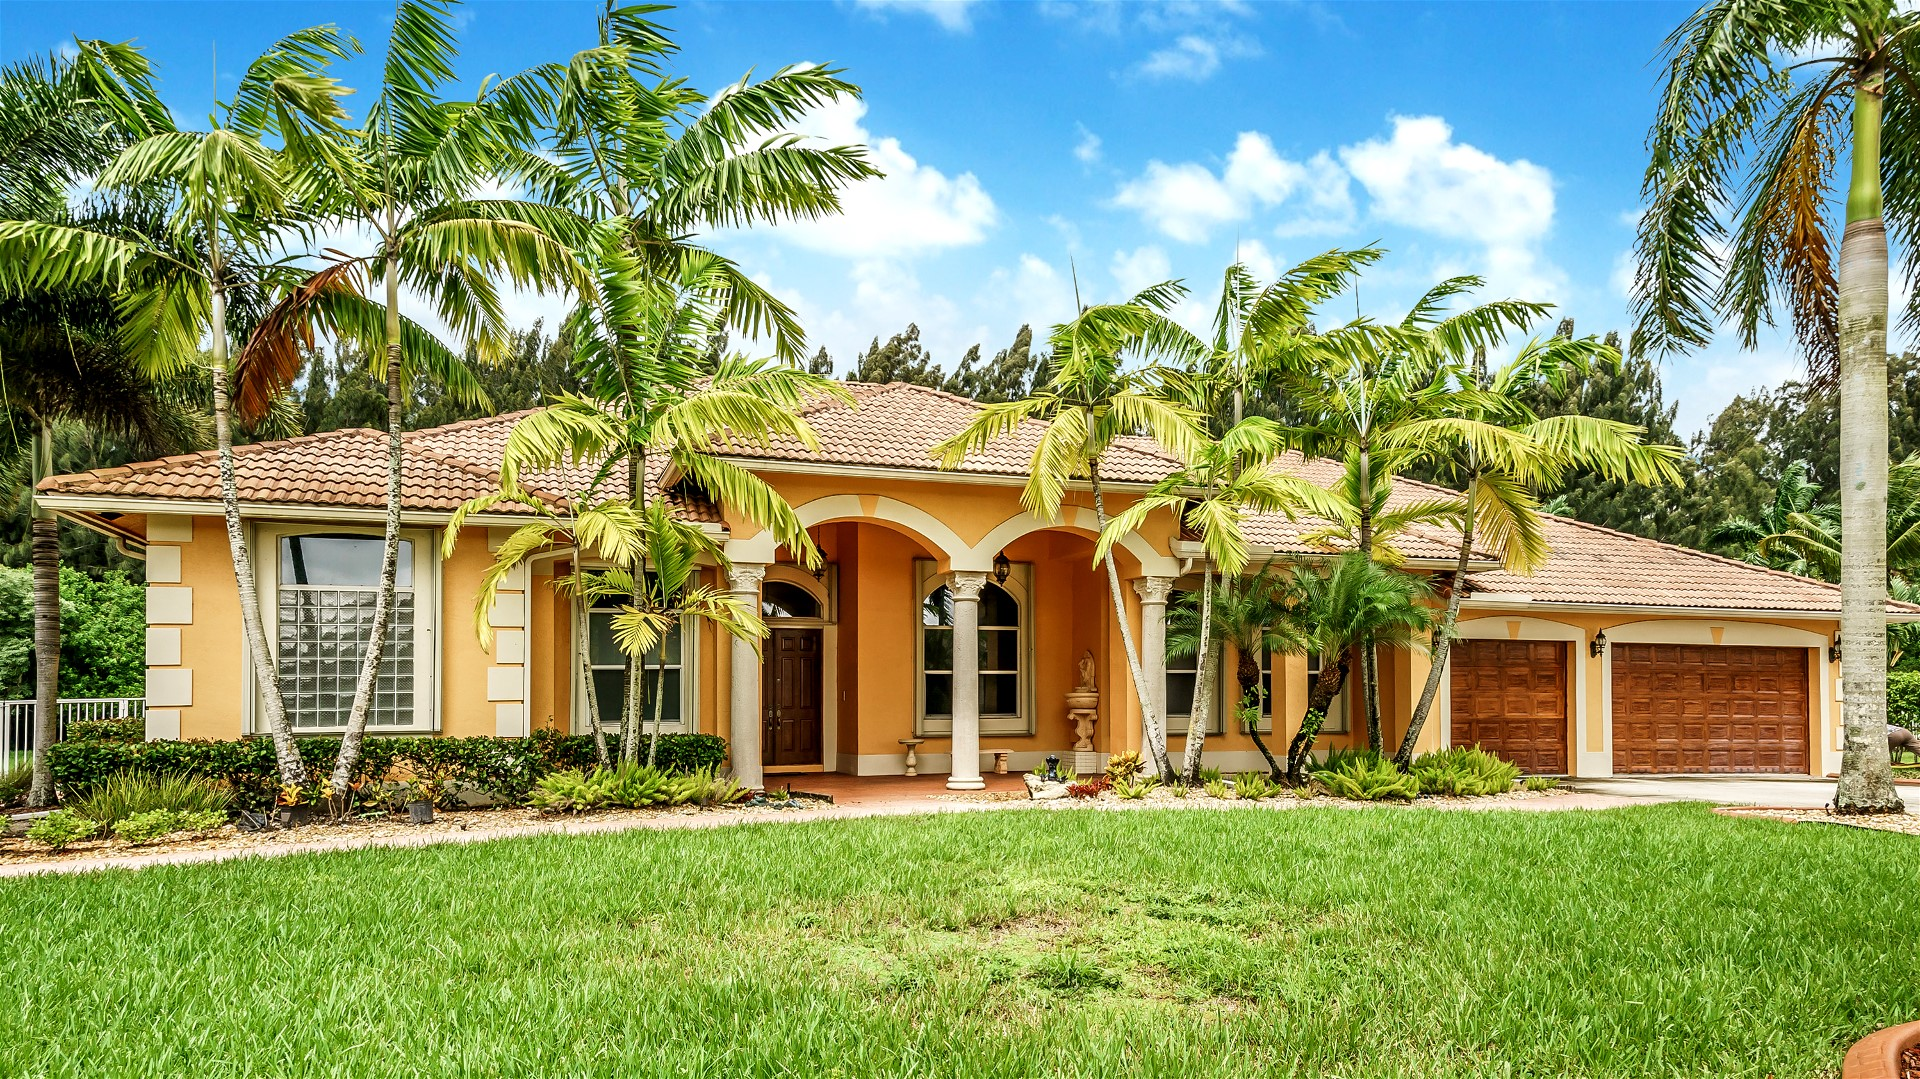 Impeccable Residence in Emerald Sprints Estates in Davie